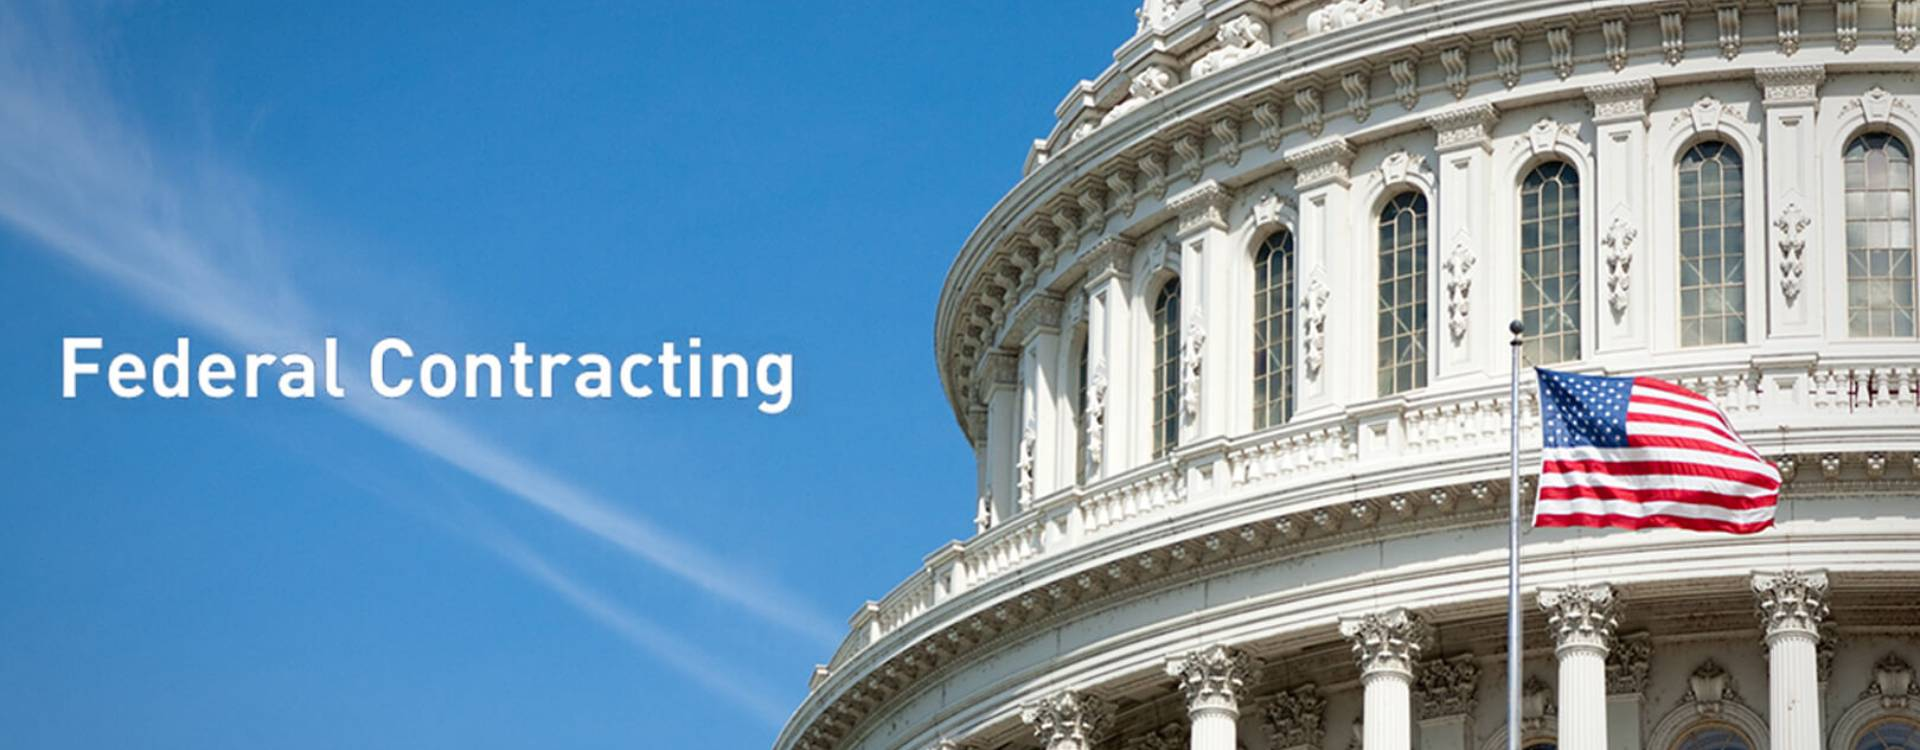 Federal Contracting 2